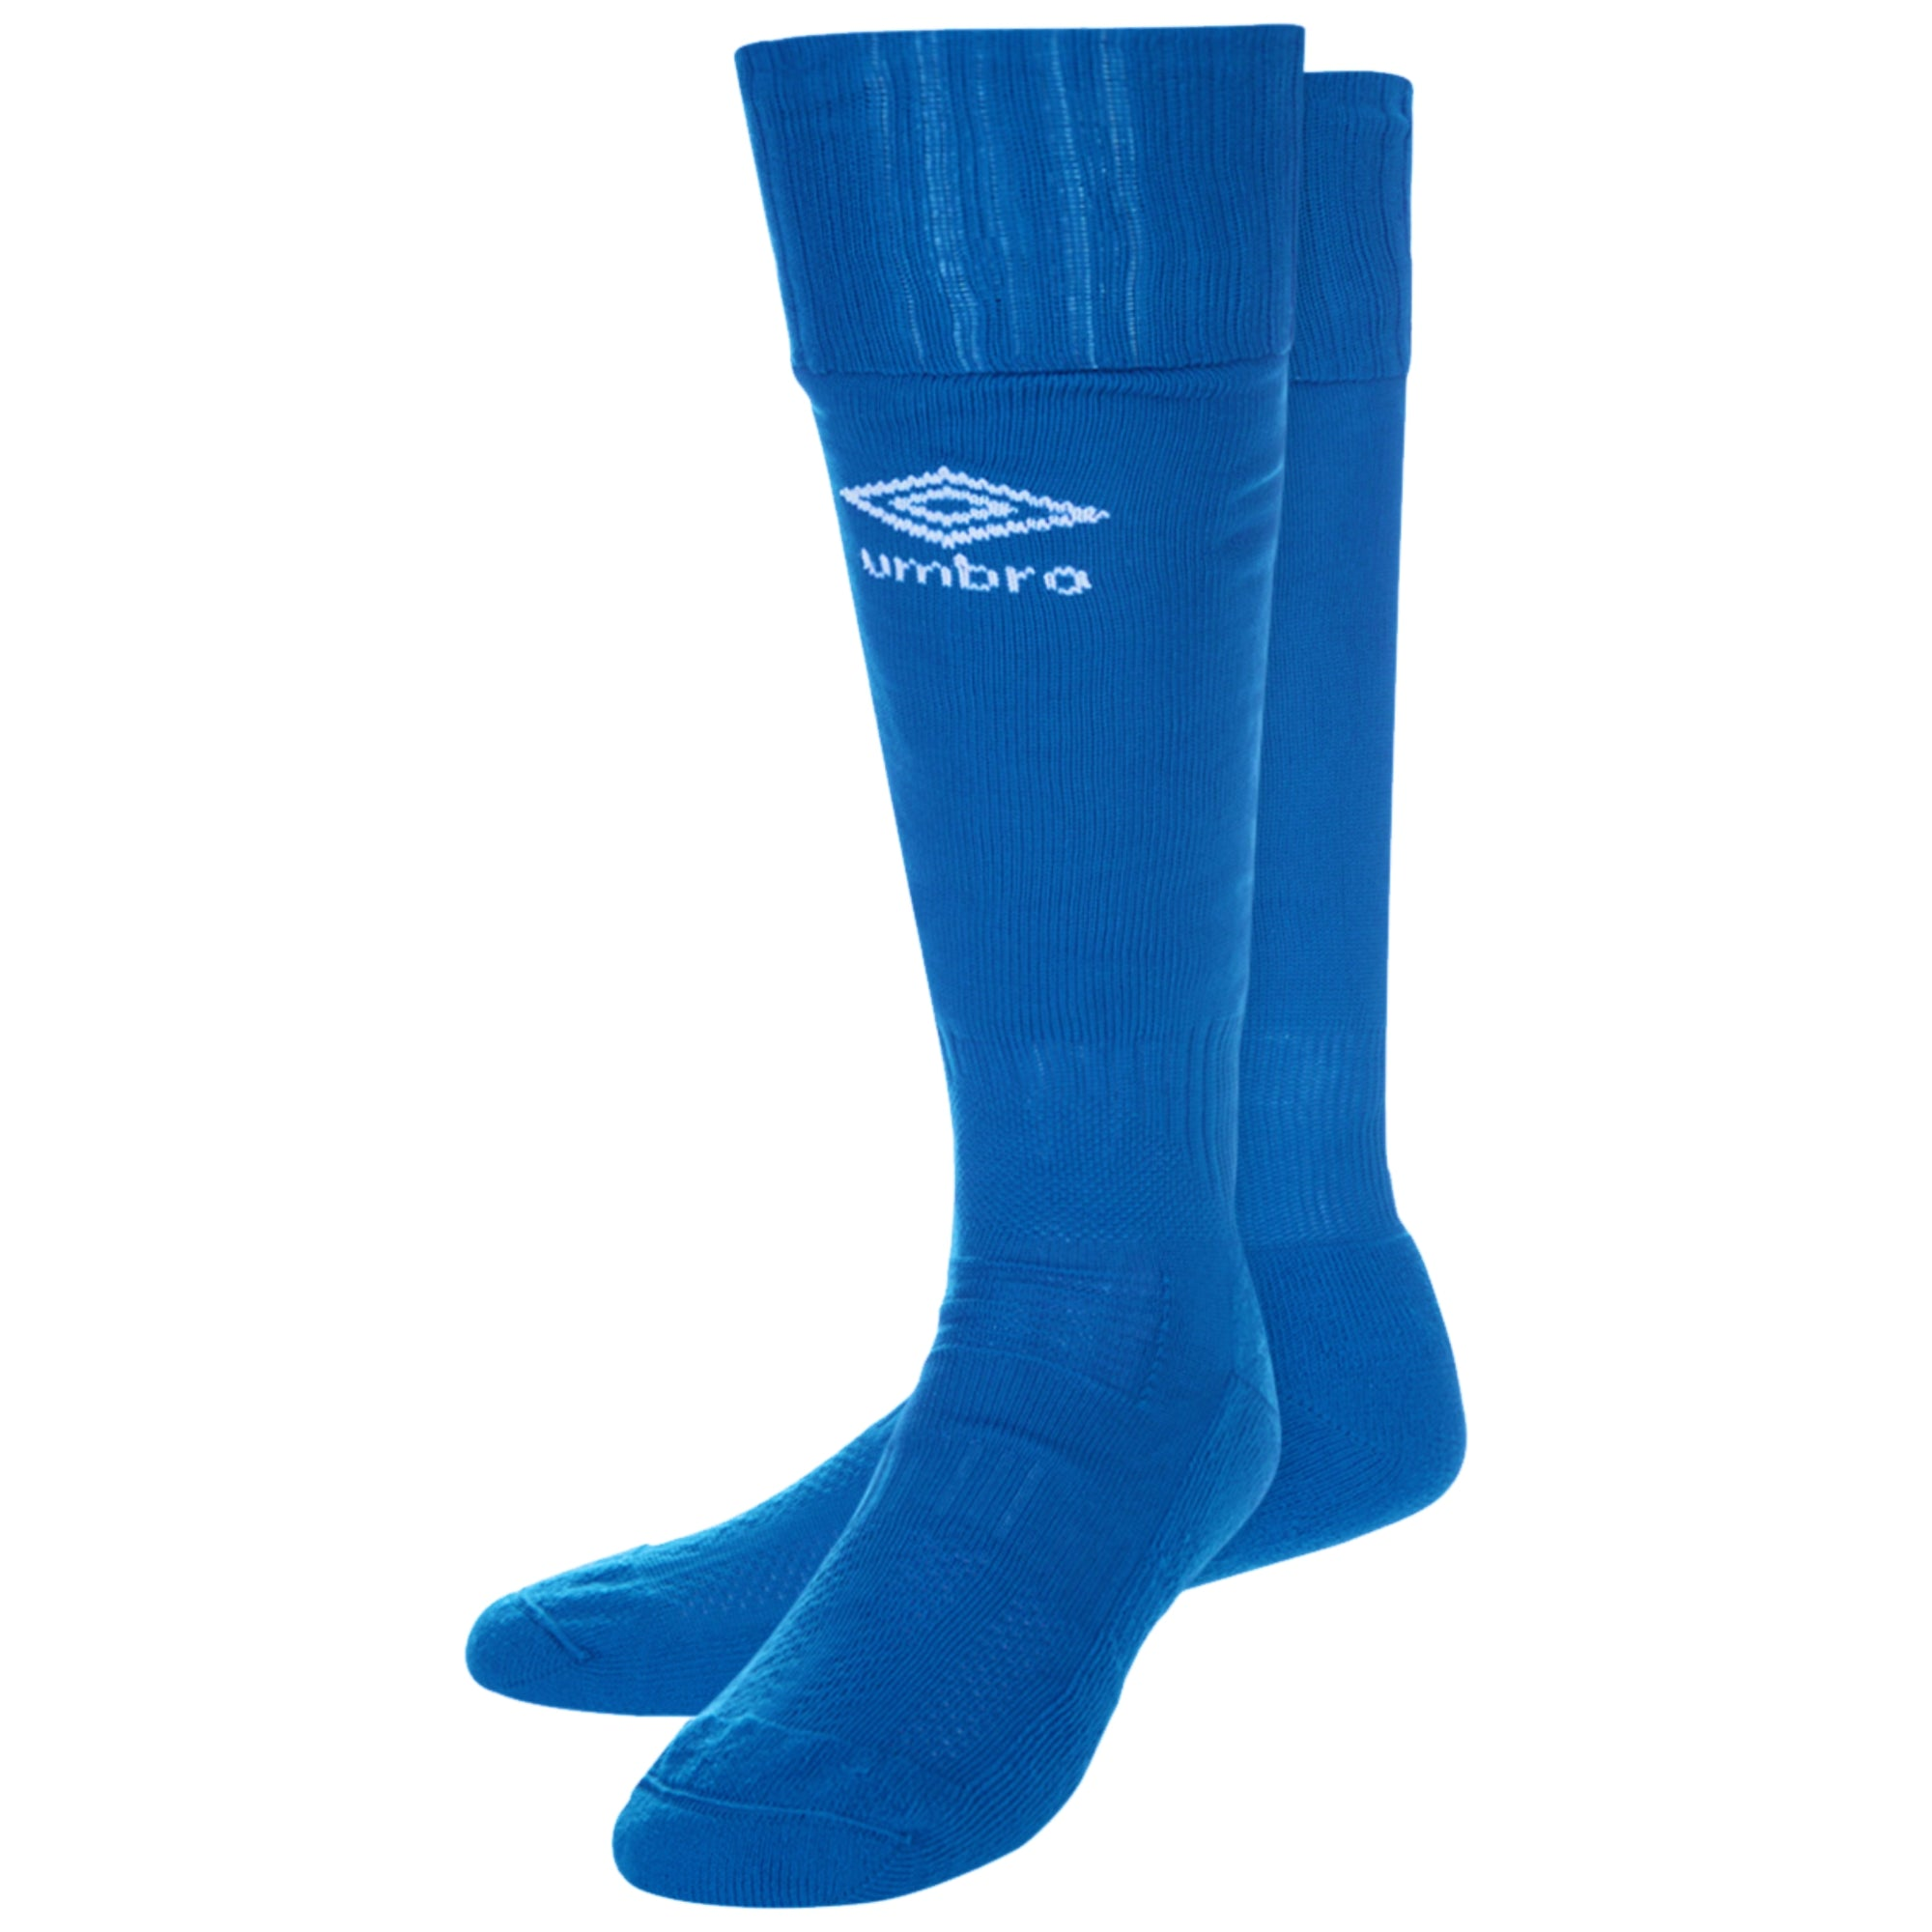 Umbro Classico Sock - Royal